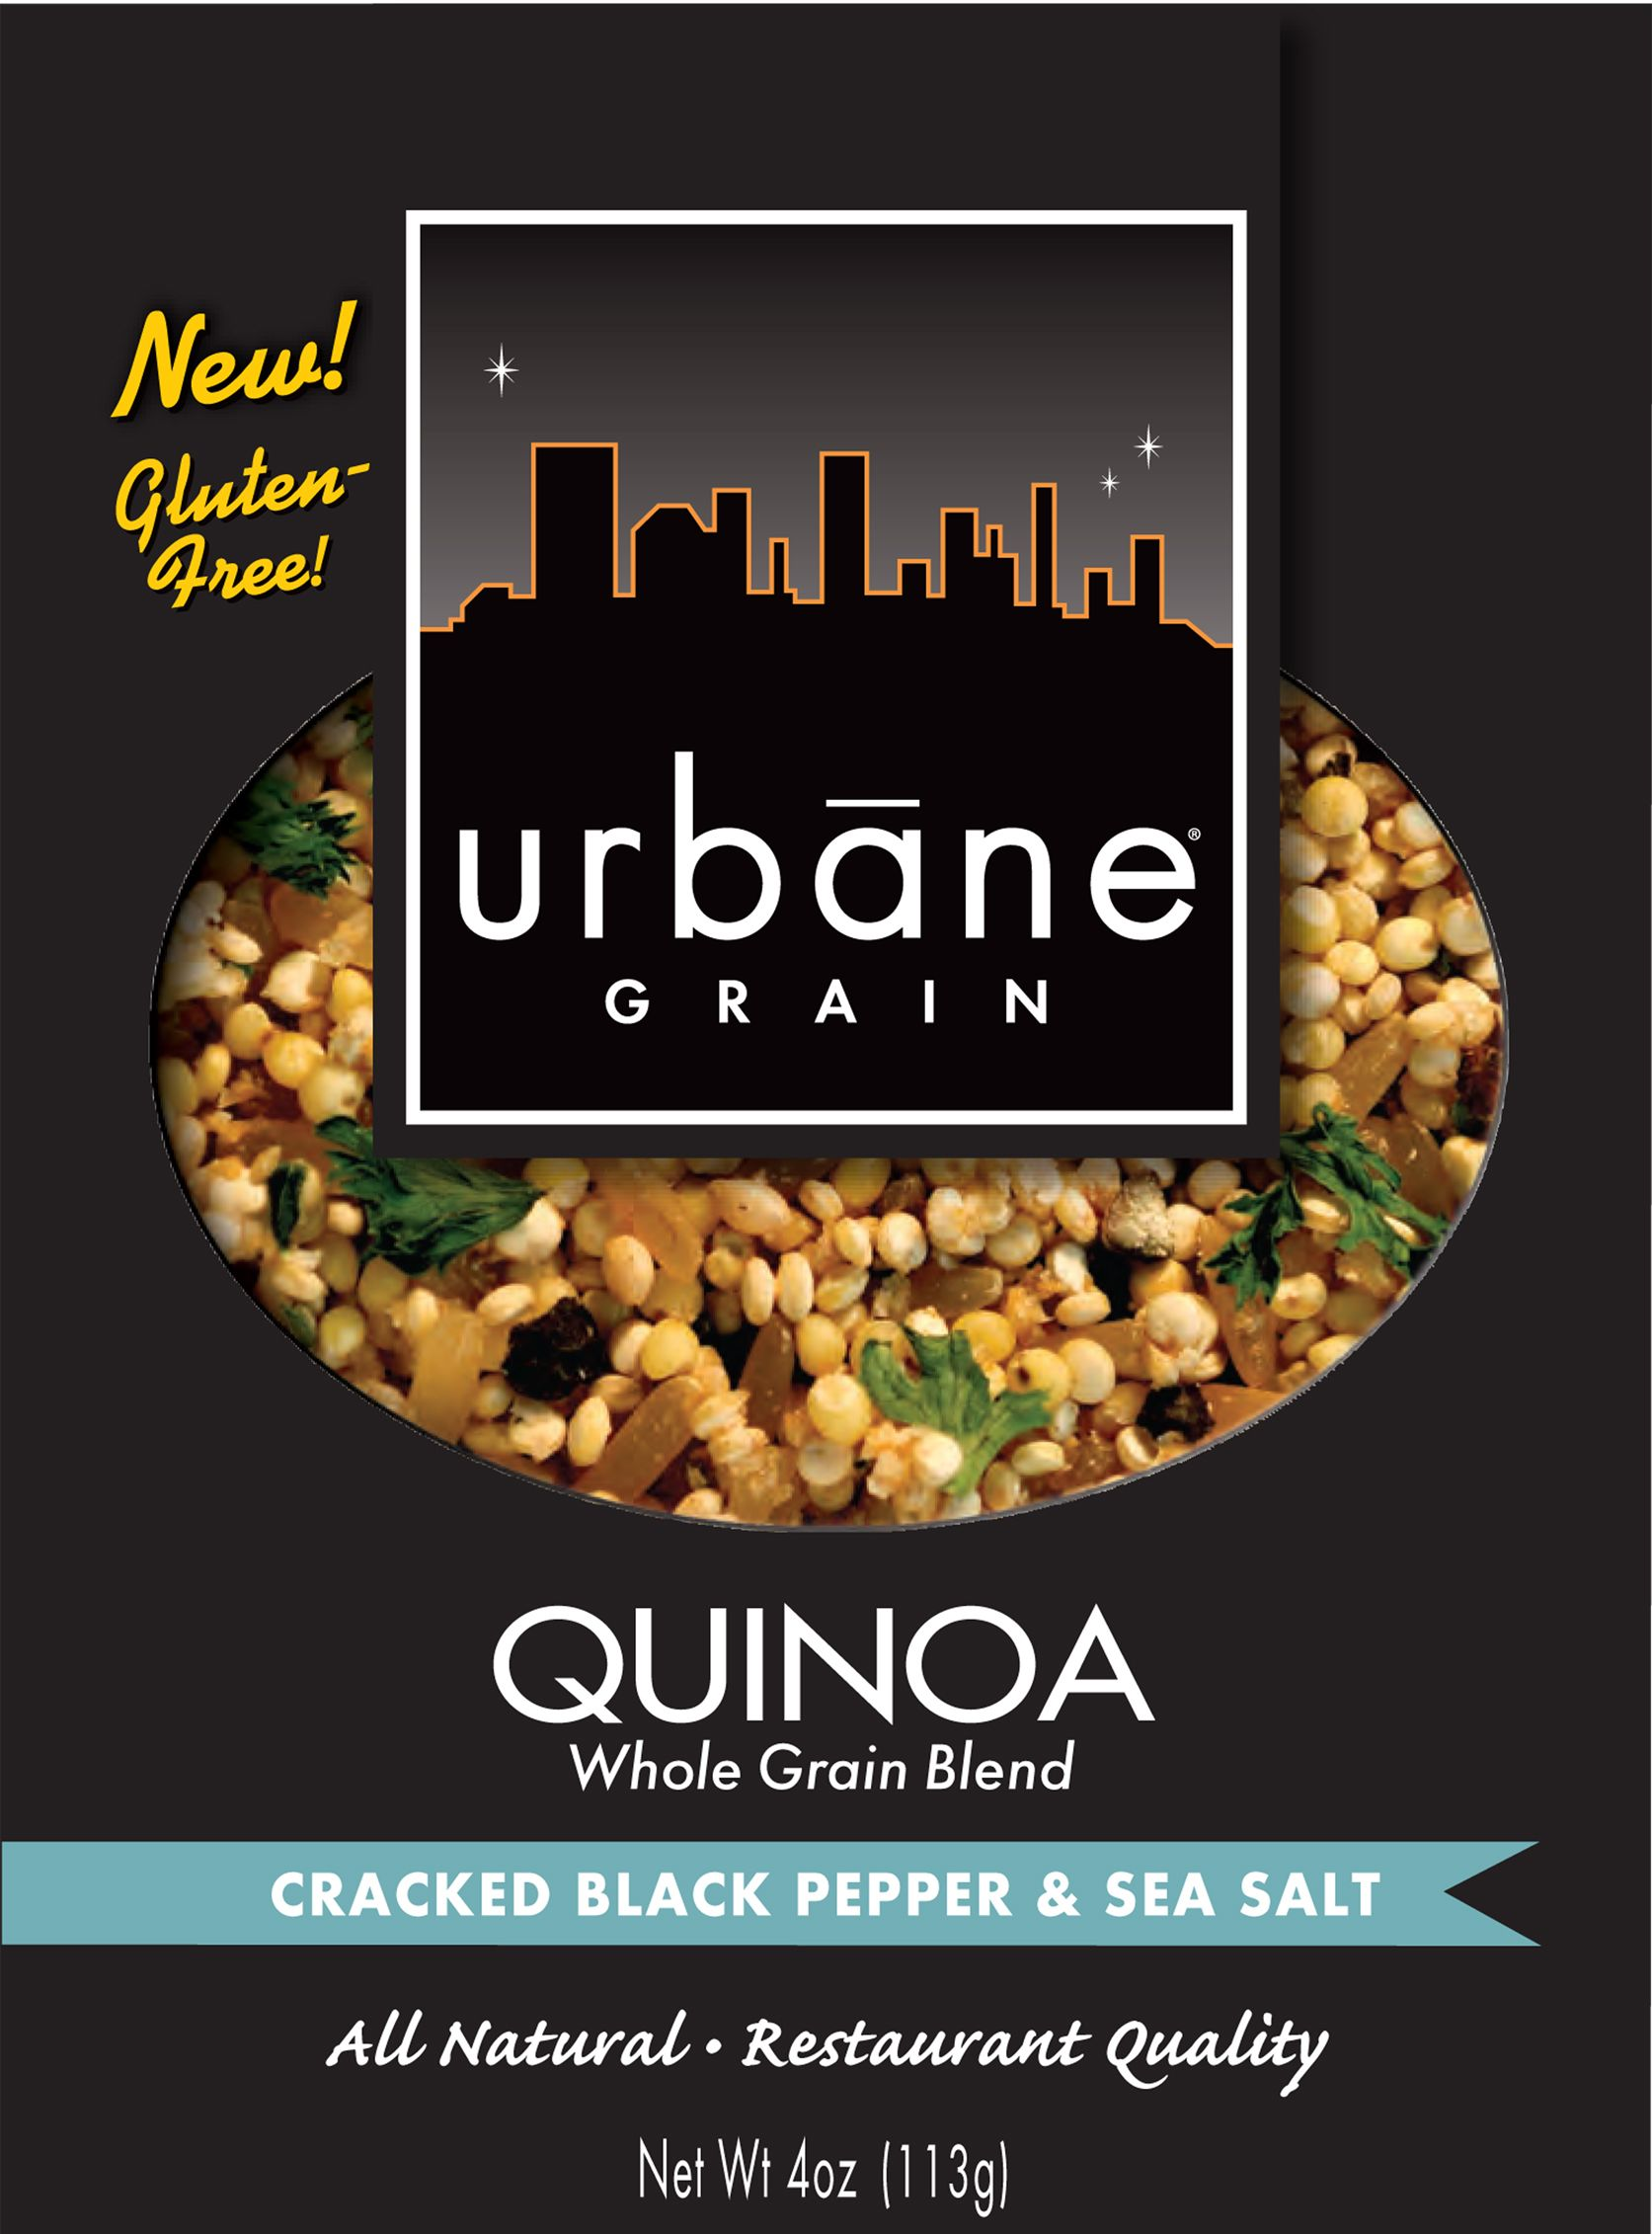 Do you know why all the buzz about quinoa? try urbane grain restaurant quality side dishes, comes in 9 different flavors.